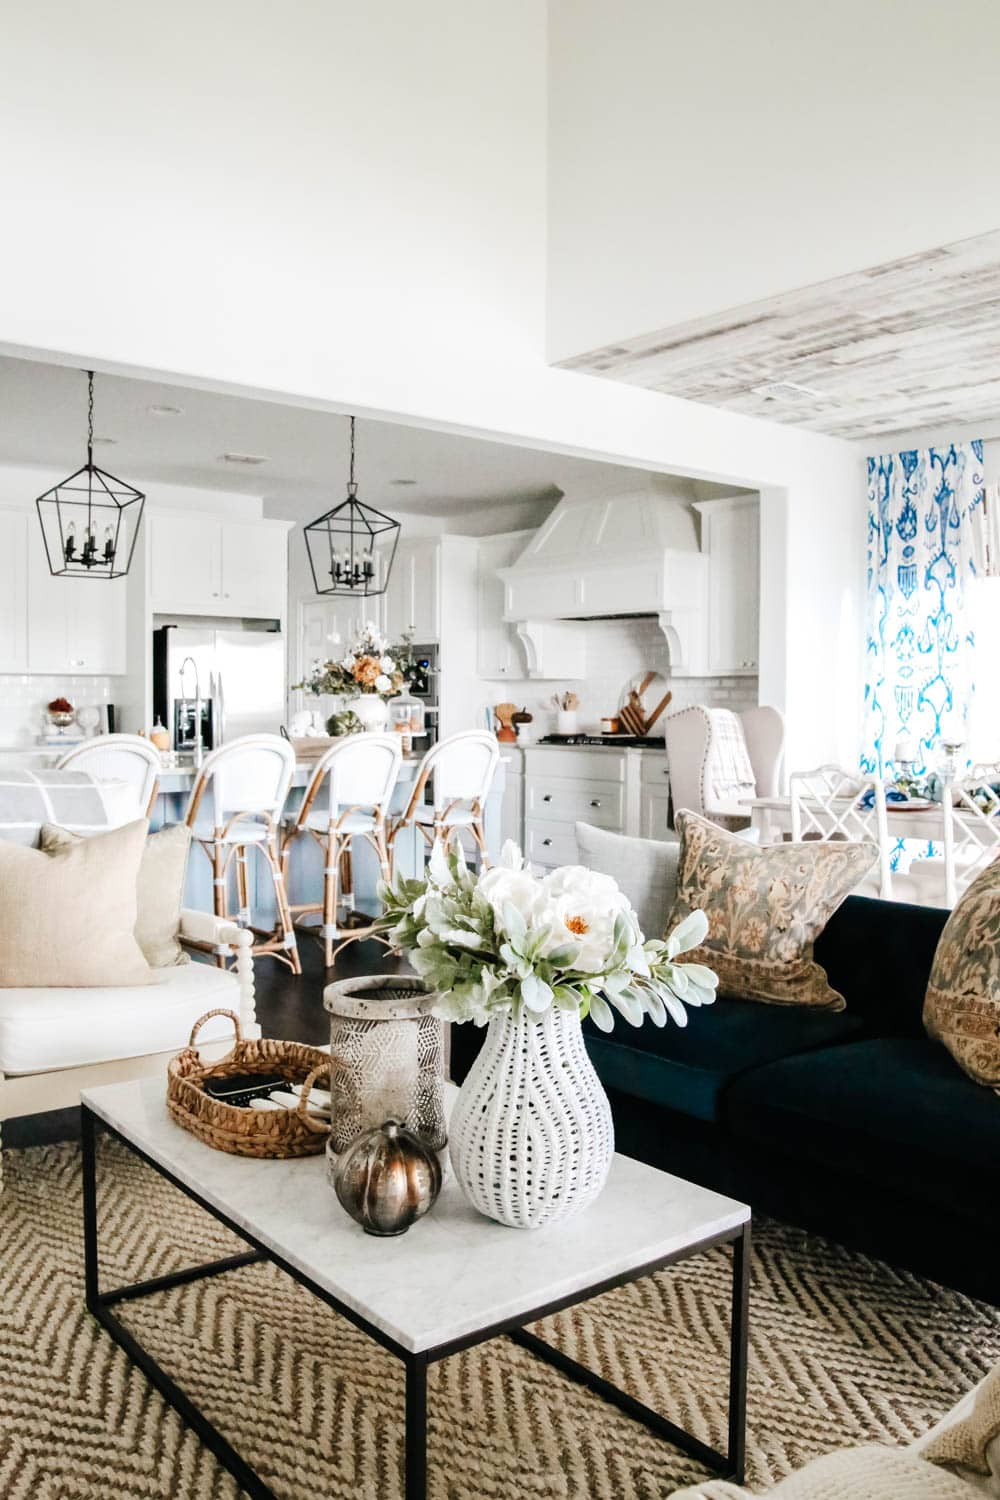 Neutral fall decor mixed with shades of blue for a coastal inspired fall home decor look. #ABlissfulNest #fallinspiration #falldecorideas #livingroomideas